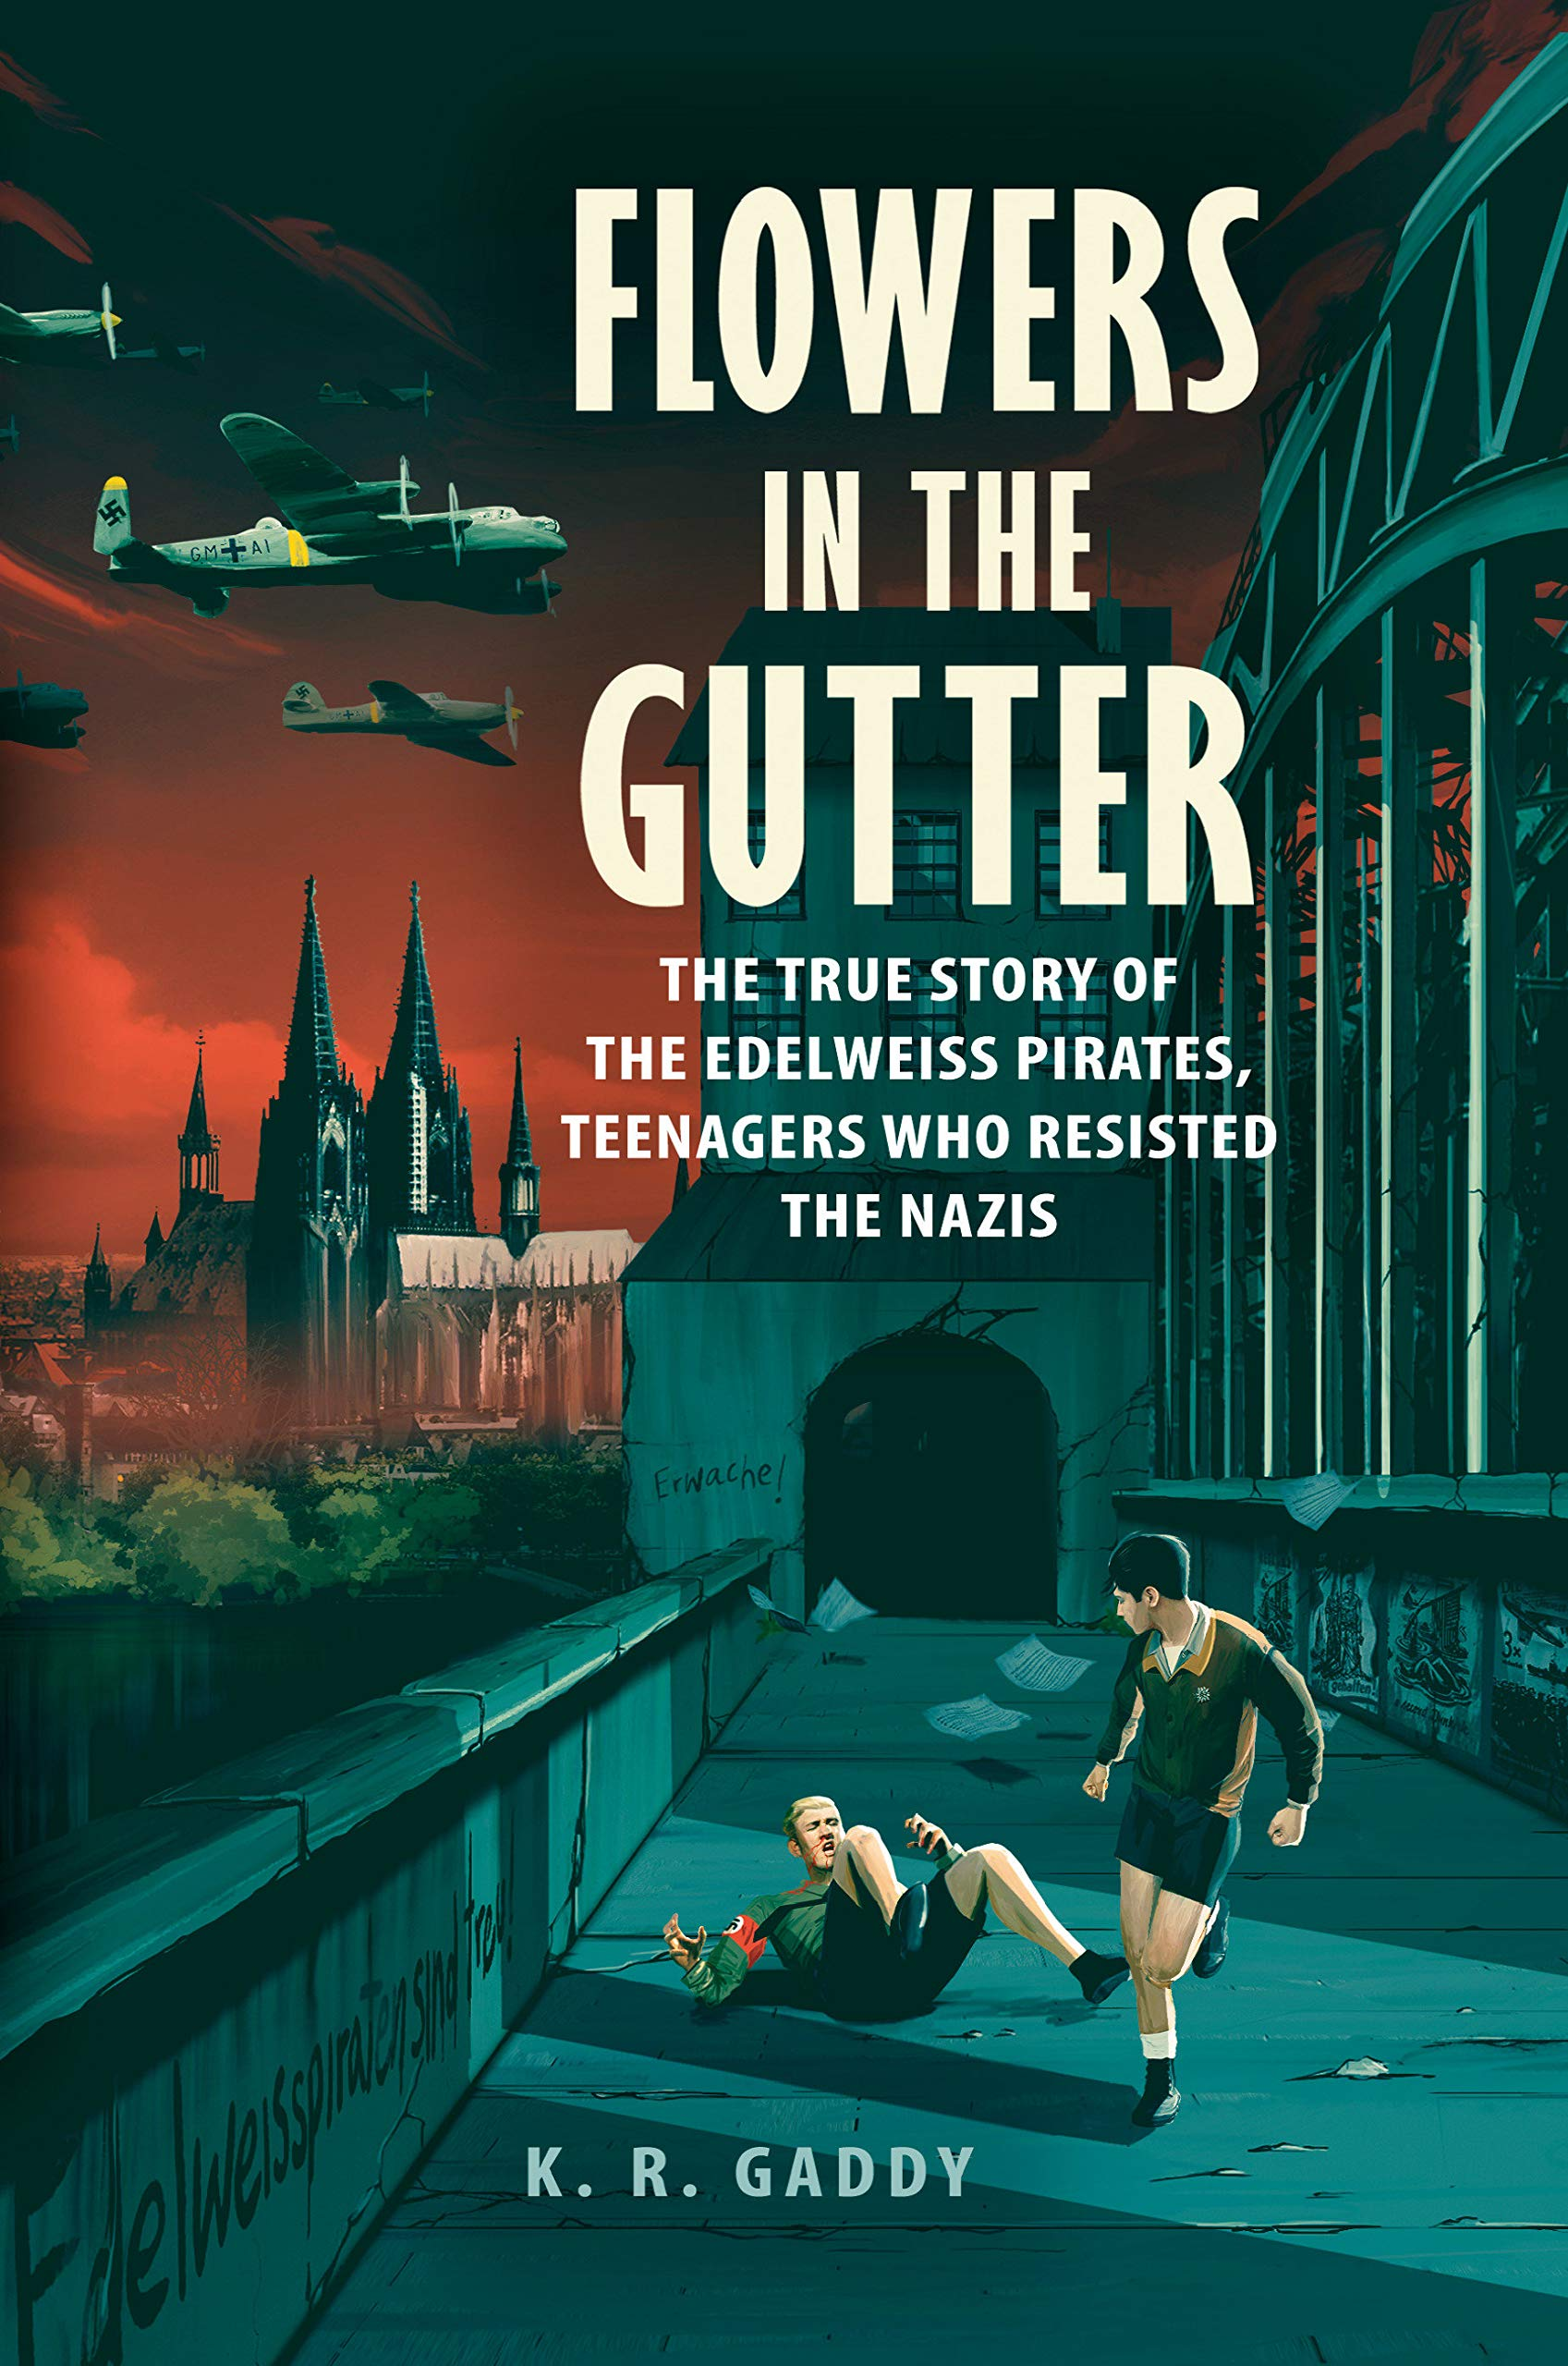 Flowers in the Gutter: The True Story of the Edelweiss Pirates, Teenagers Who Resisted the Nazis